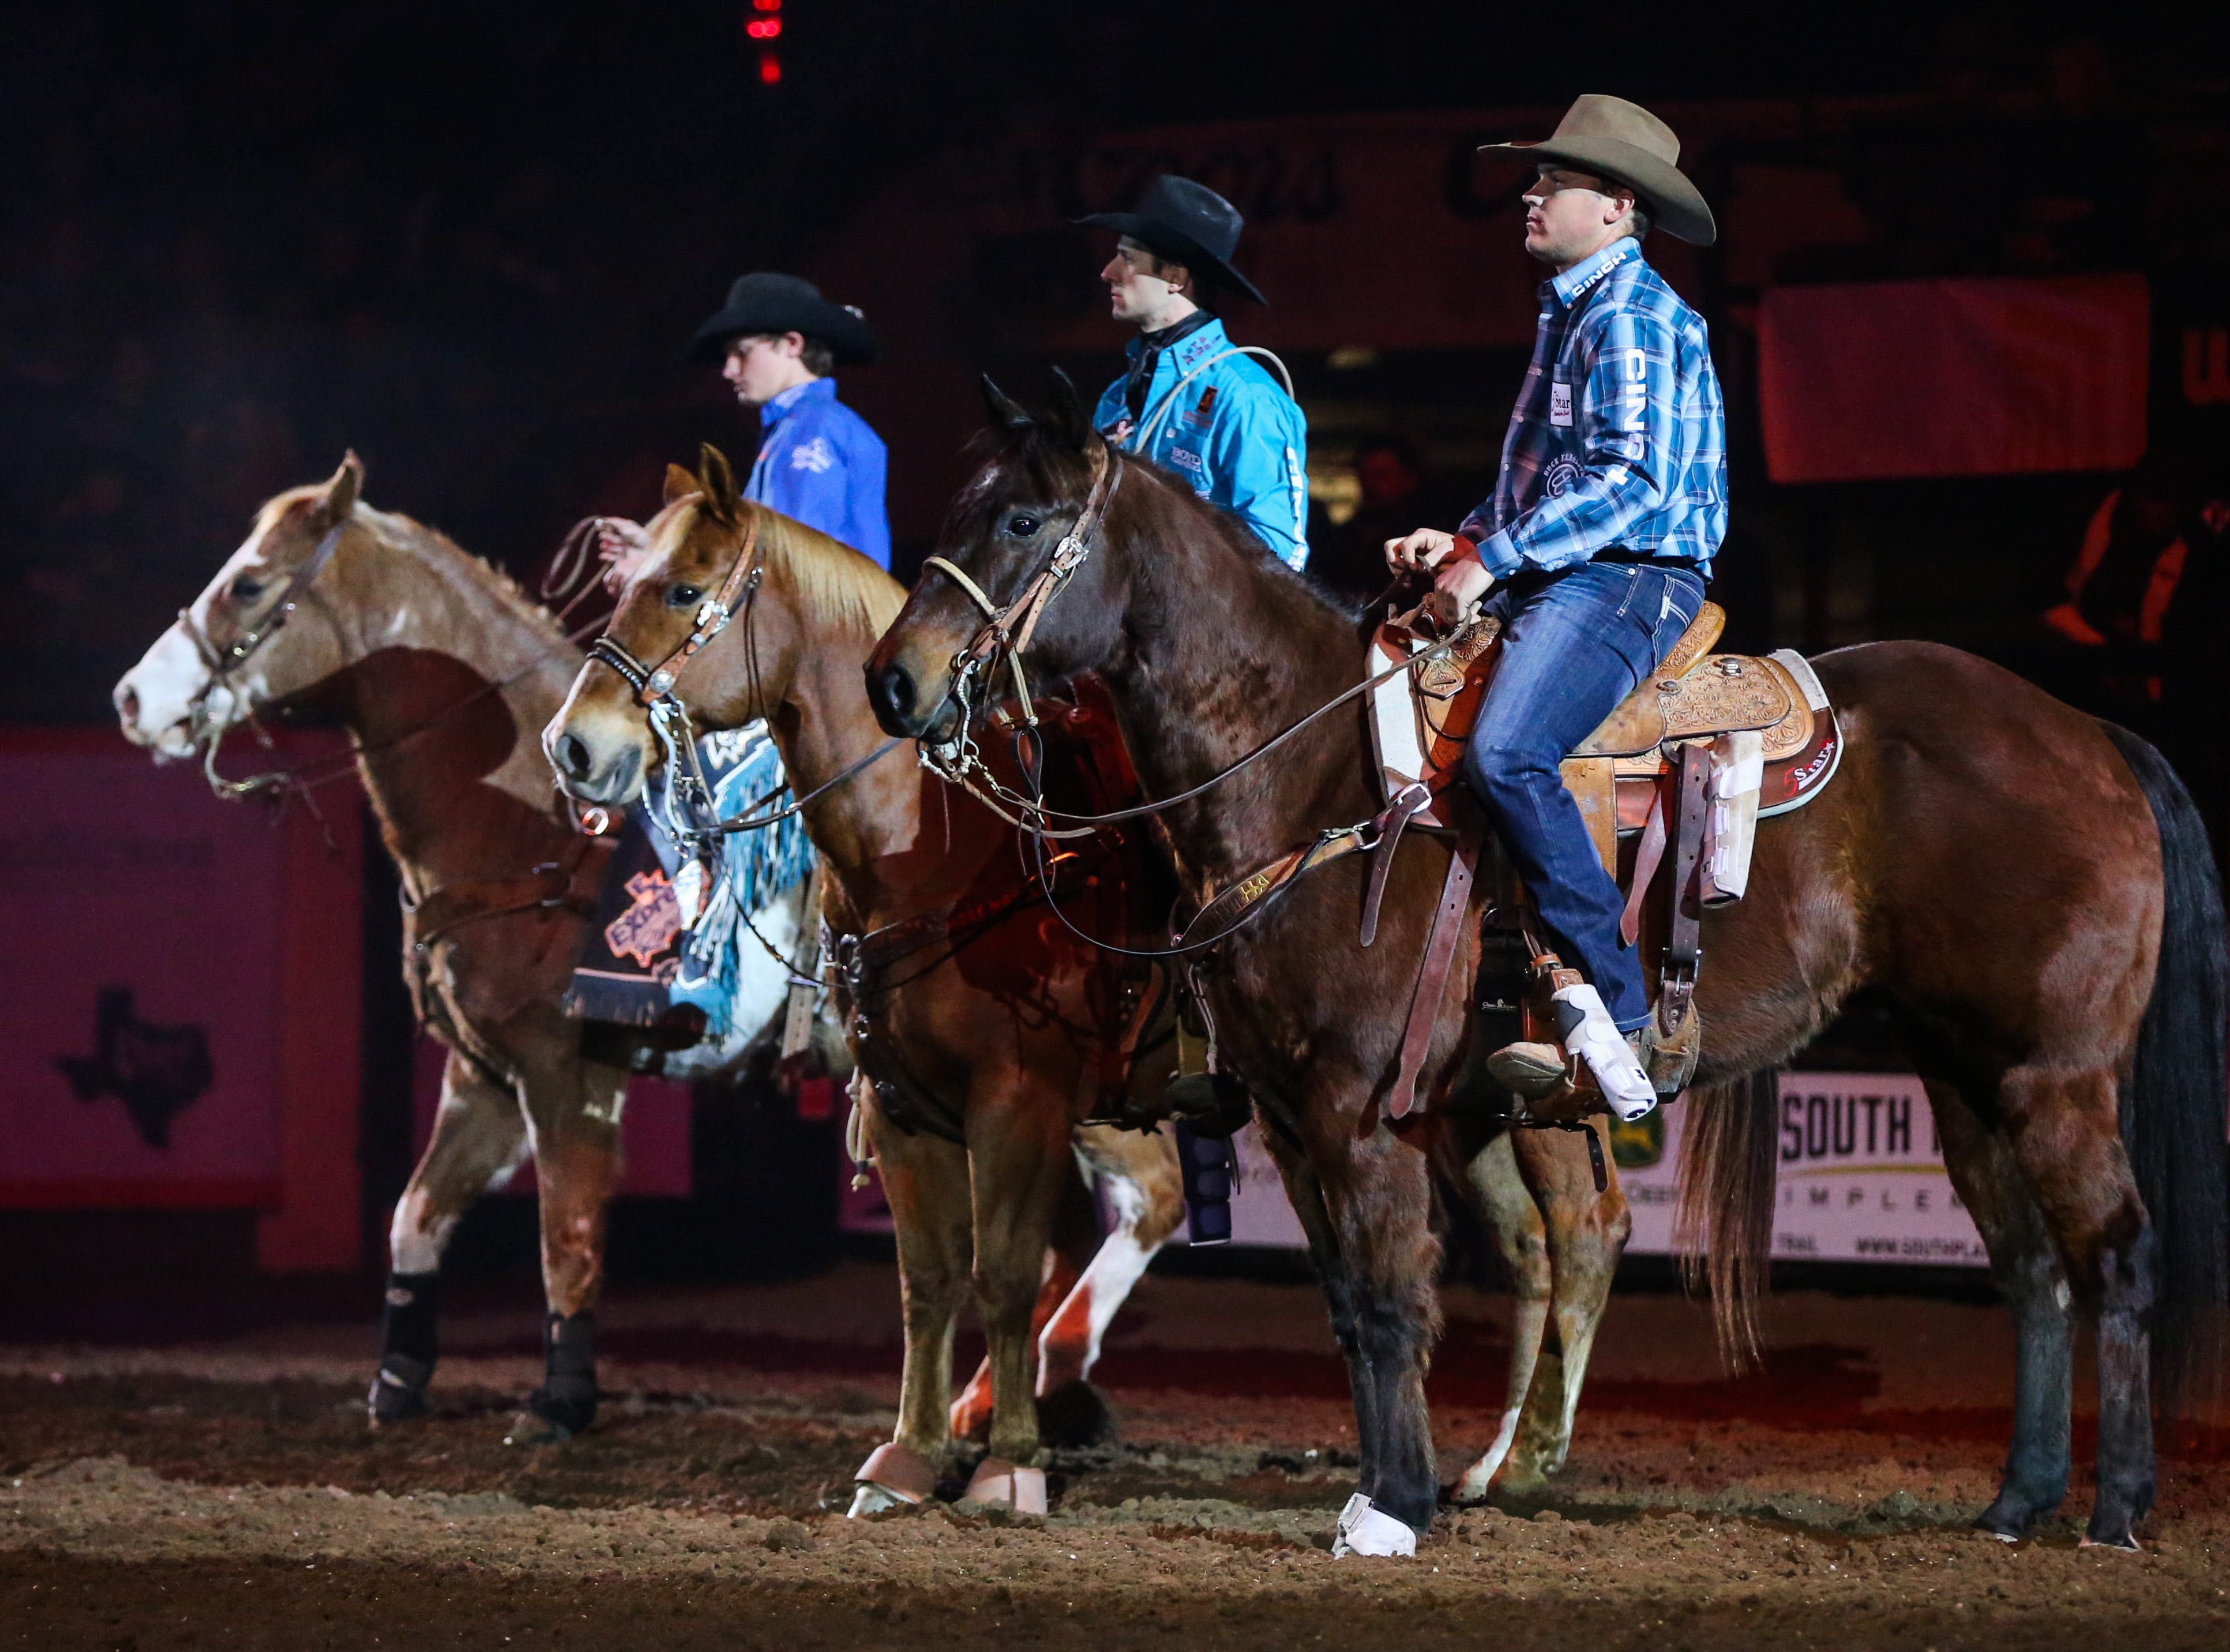 Rodeo participants are introduced to the audience before the 5th performance of the San Angelo Stock Show & Rodeo Friday, Feb. 8, 2019, at Foster Communications Coliseum.